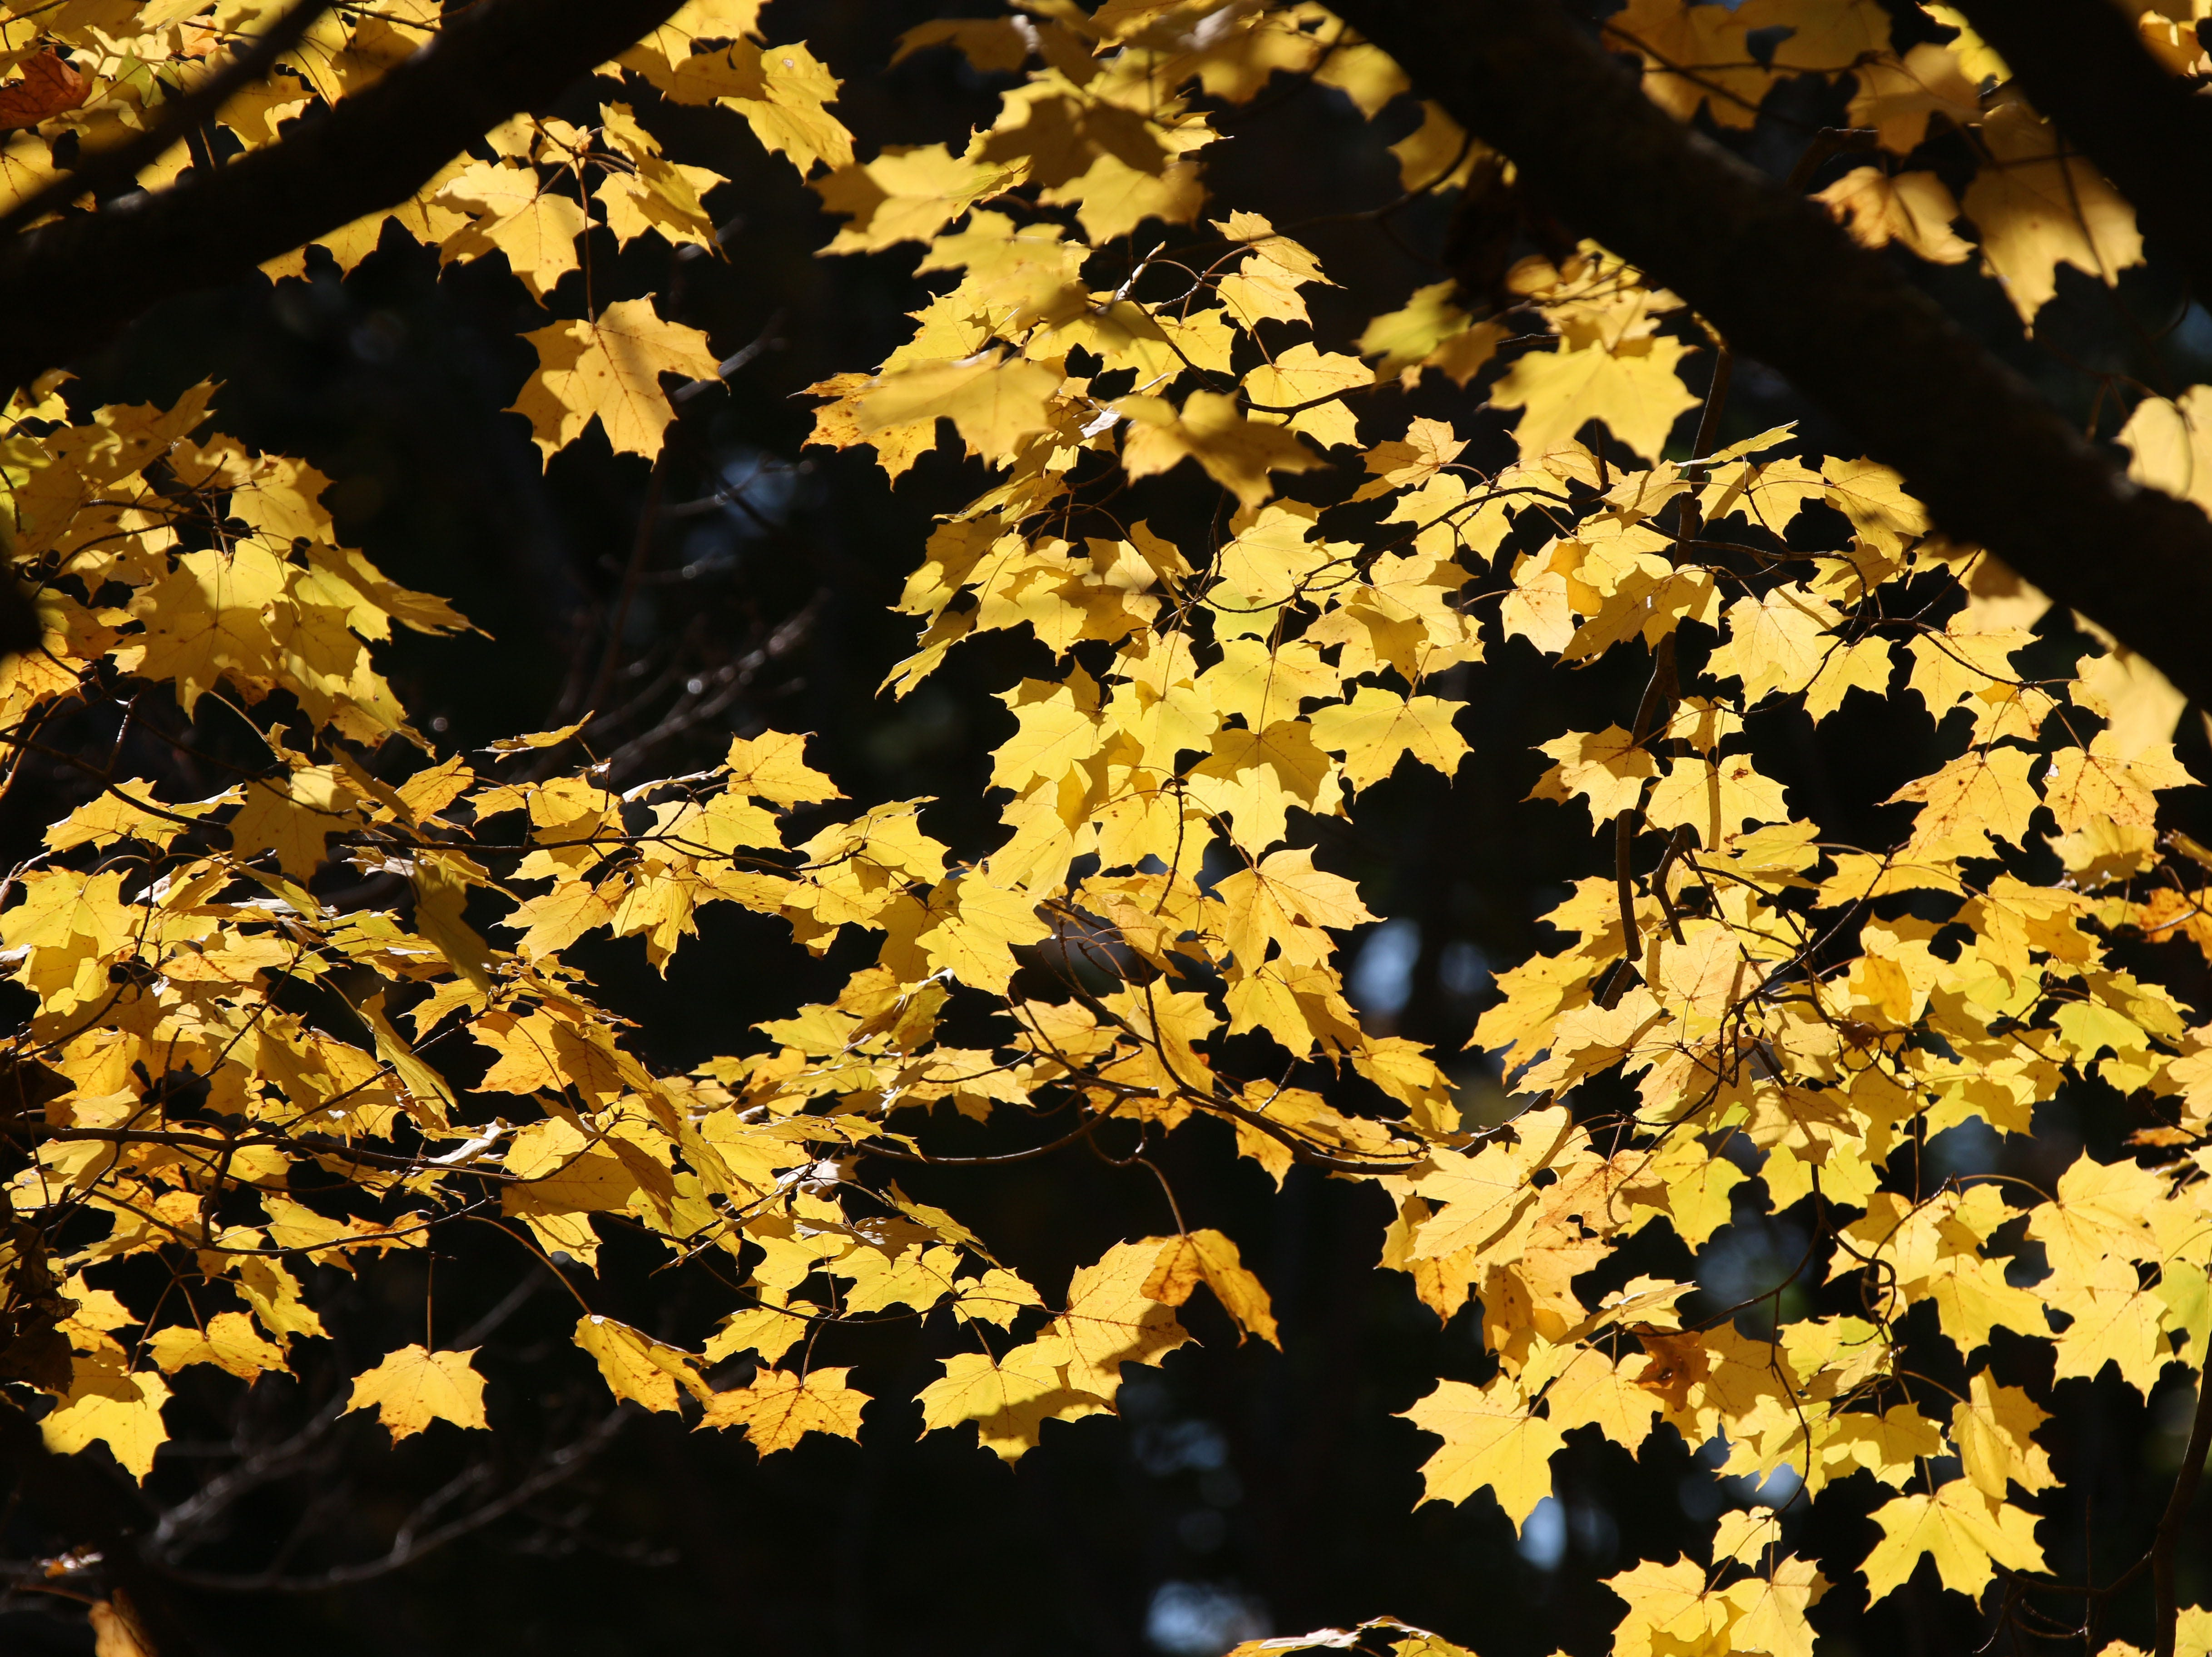 Leaves are aglow in color near Kohler Schools, Tuesday, October 16, 2018 in Kohler, Wis.